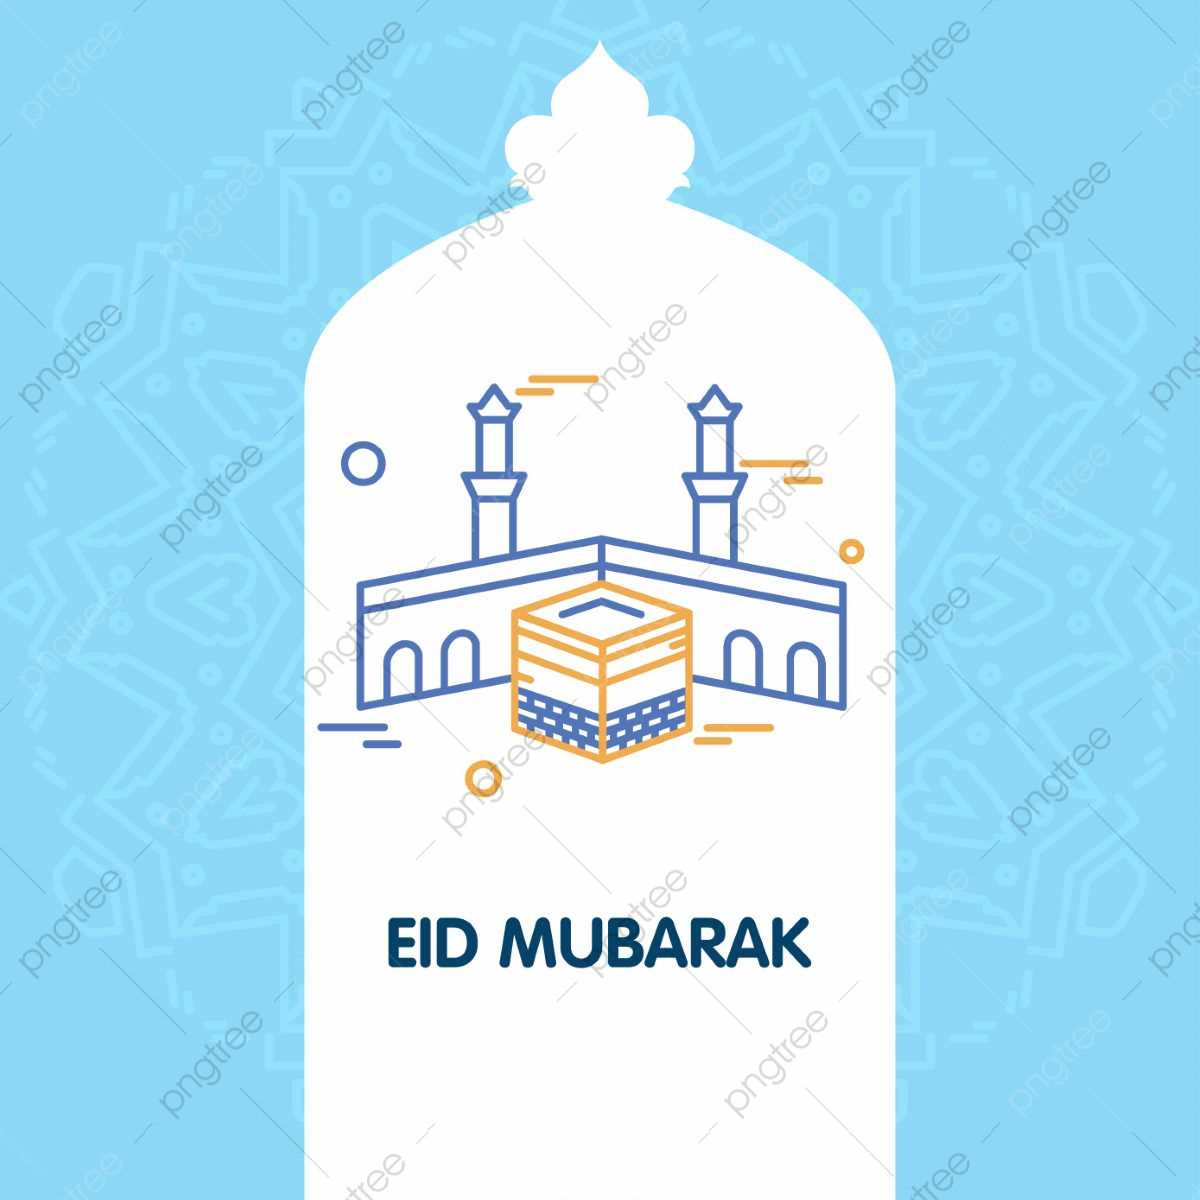 Eid Mubarak Creative Design Vector Creative Icons Eid Mubarak Png And Vector With Transparent Background For Free Download